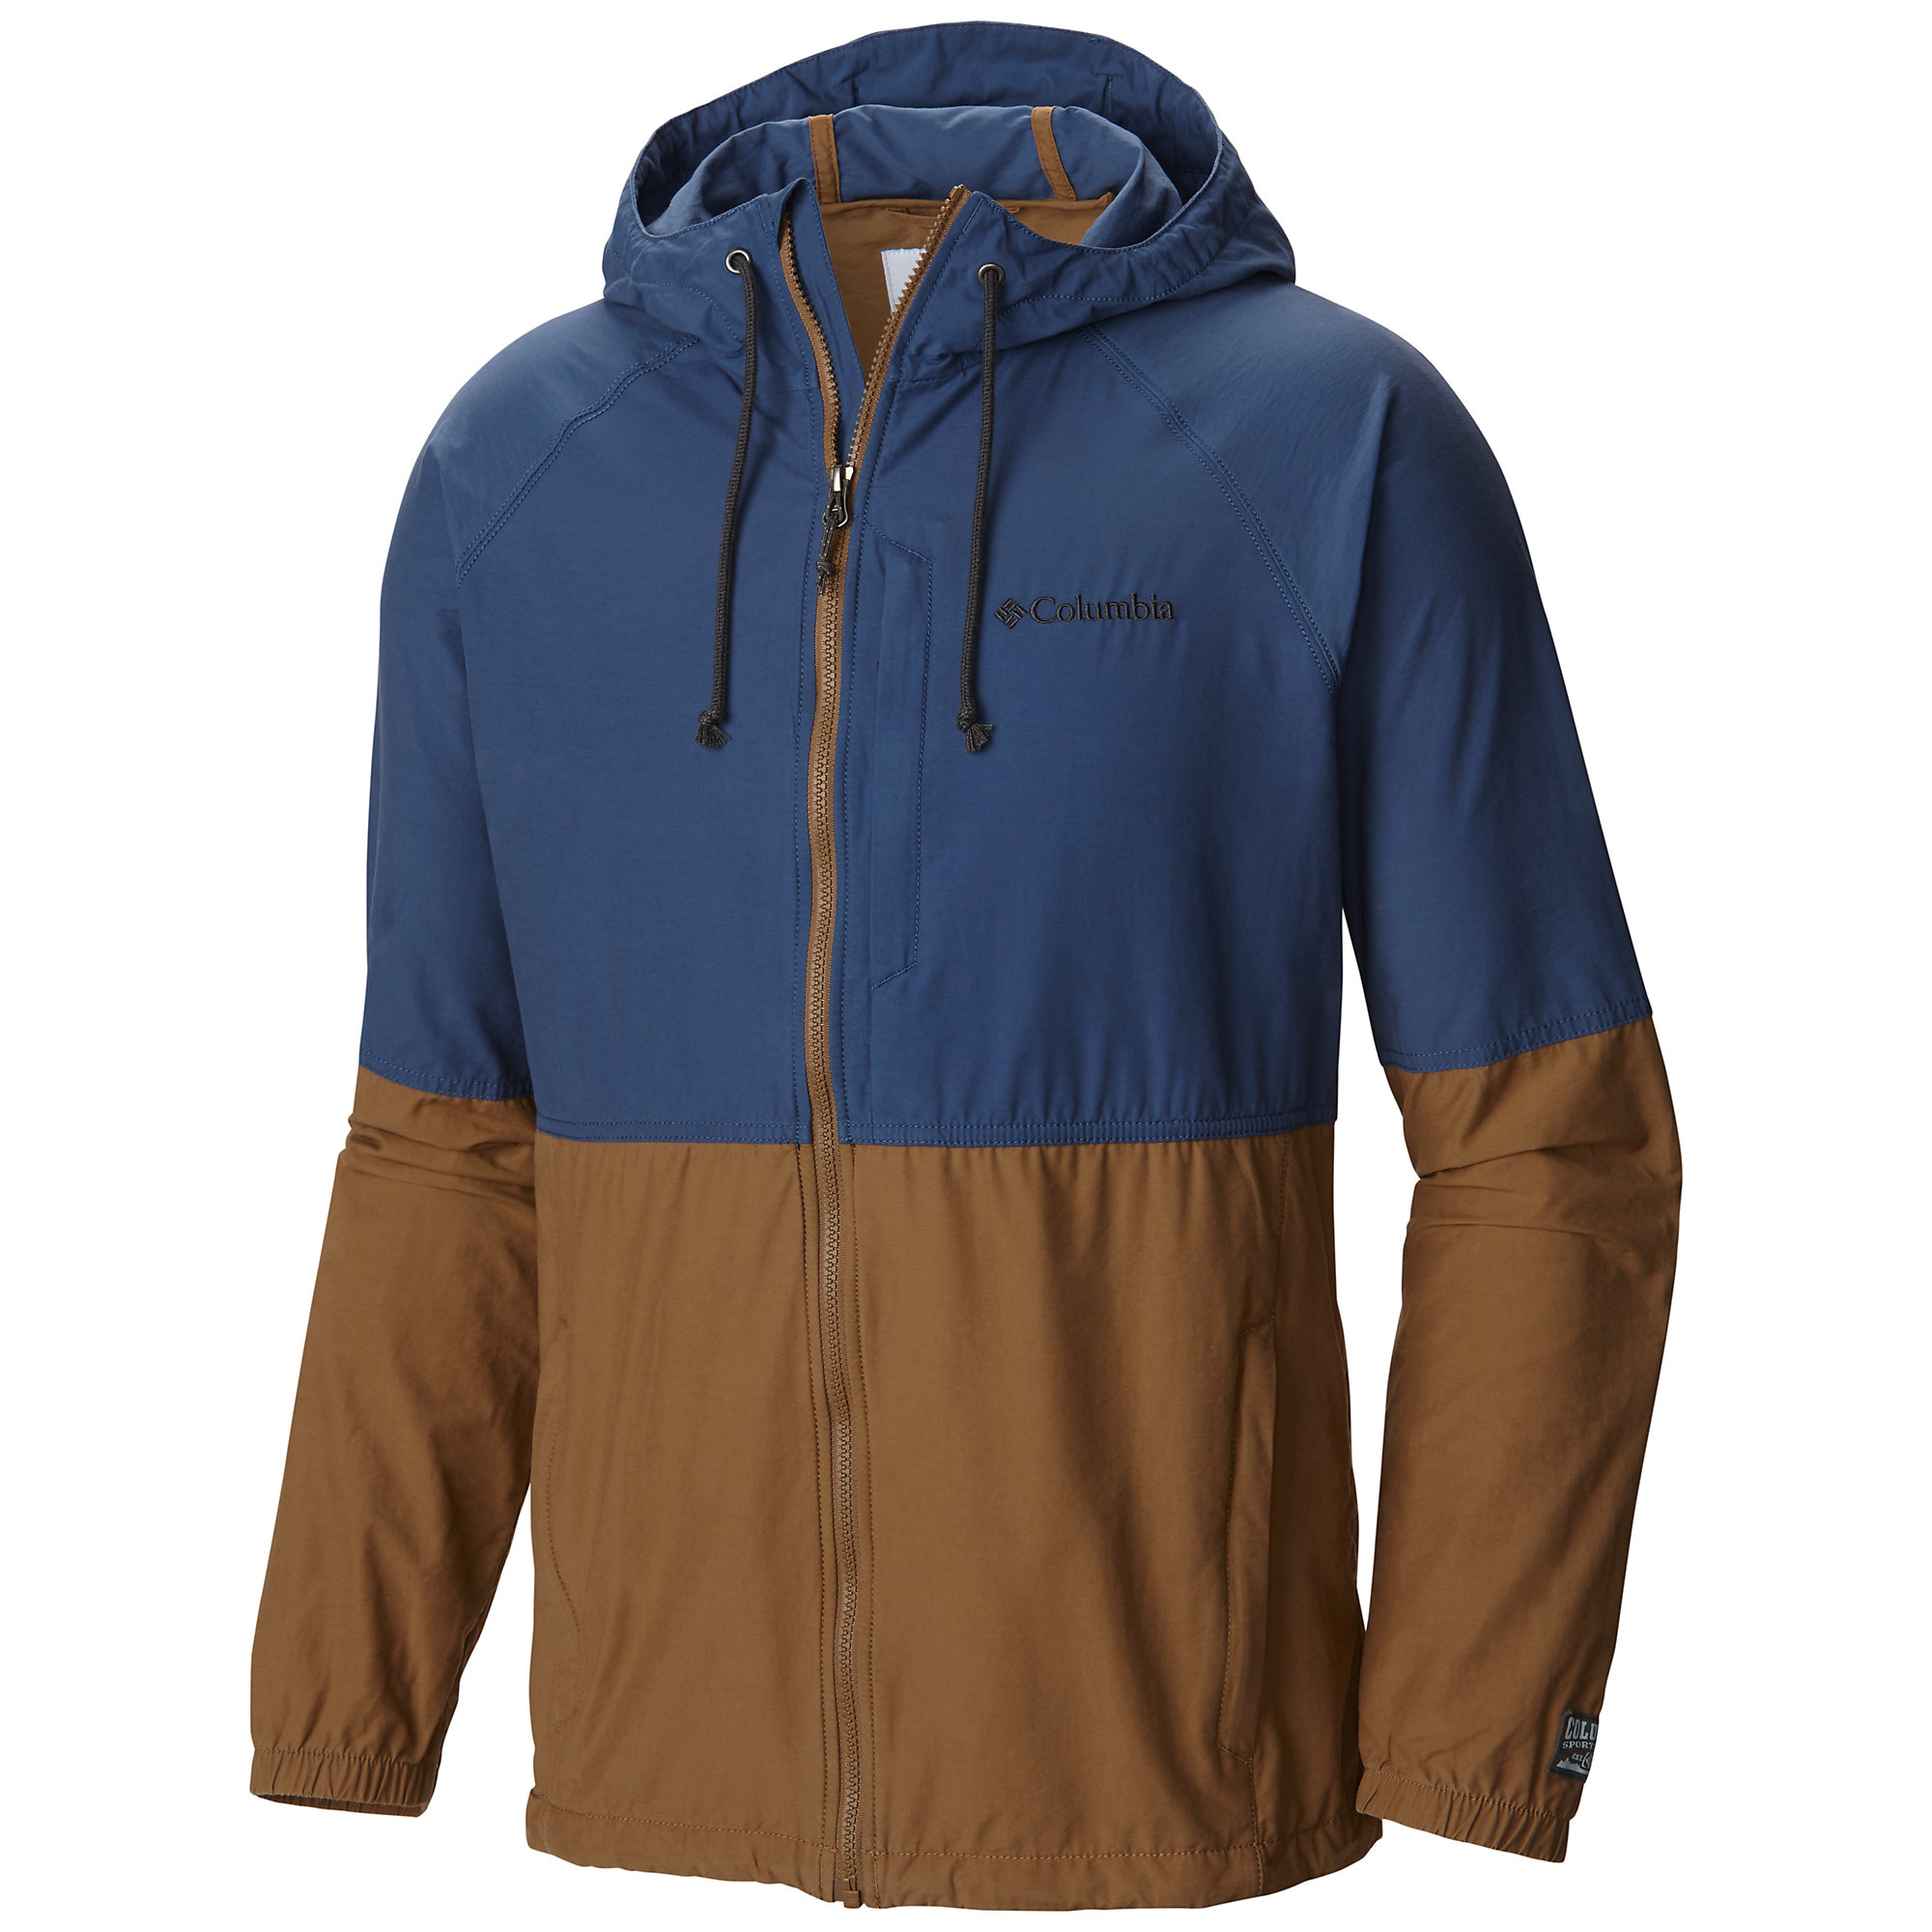 Columbia Bail on the Trail Jacket